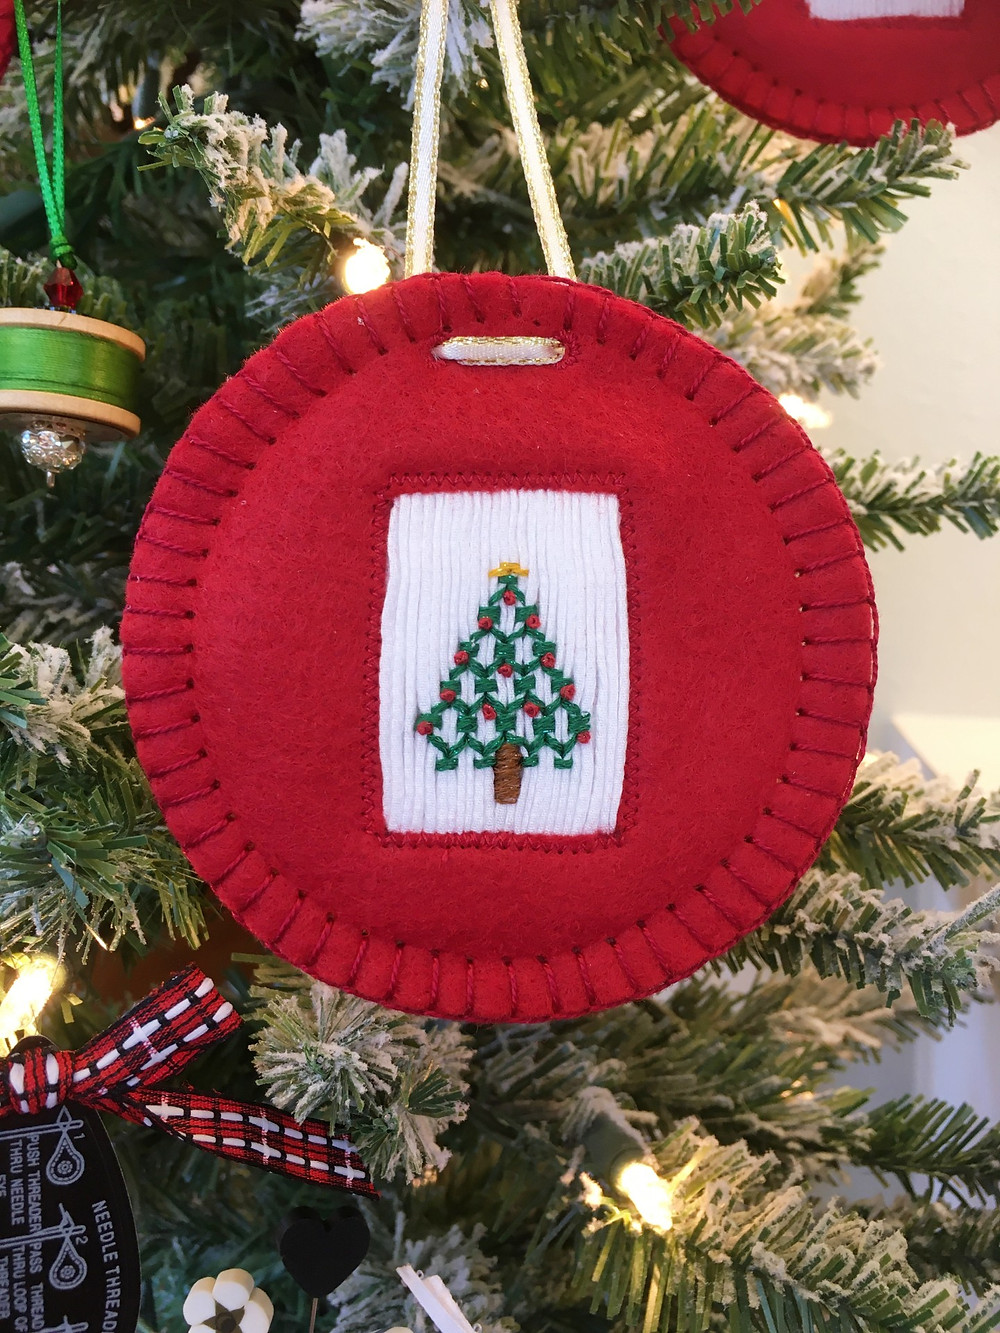 The Finished Ornament